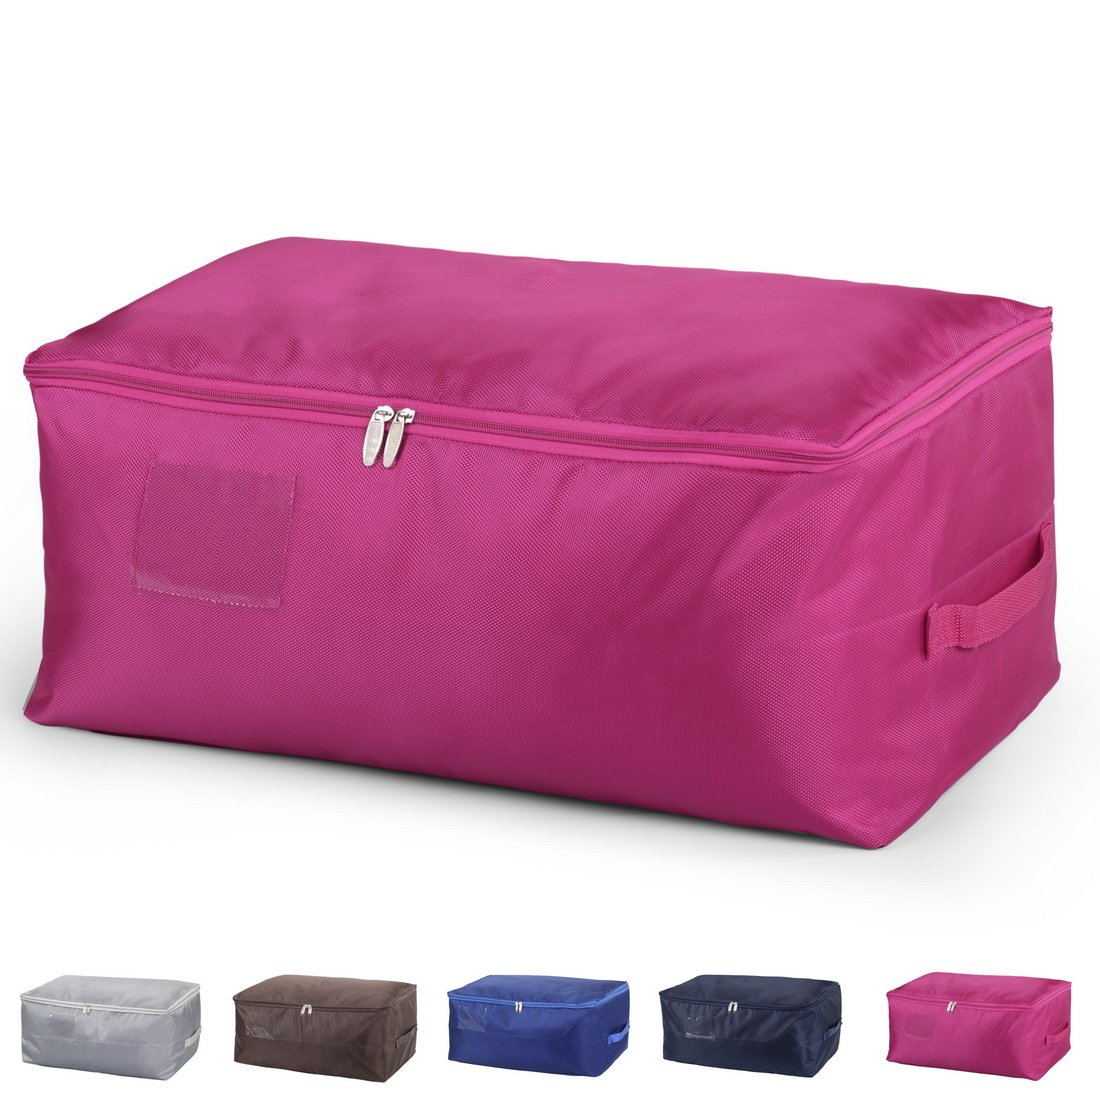 DOKEHOM DKA1014RDXXL2 XX-Large Under Bed Storage Bag (5 Colors, L and XXL), Thick Ultra Size Fabric Clothes Bag, Moisture proof (Red, XXL)